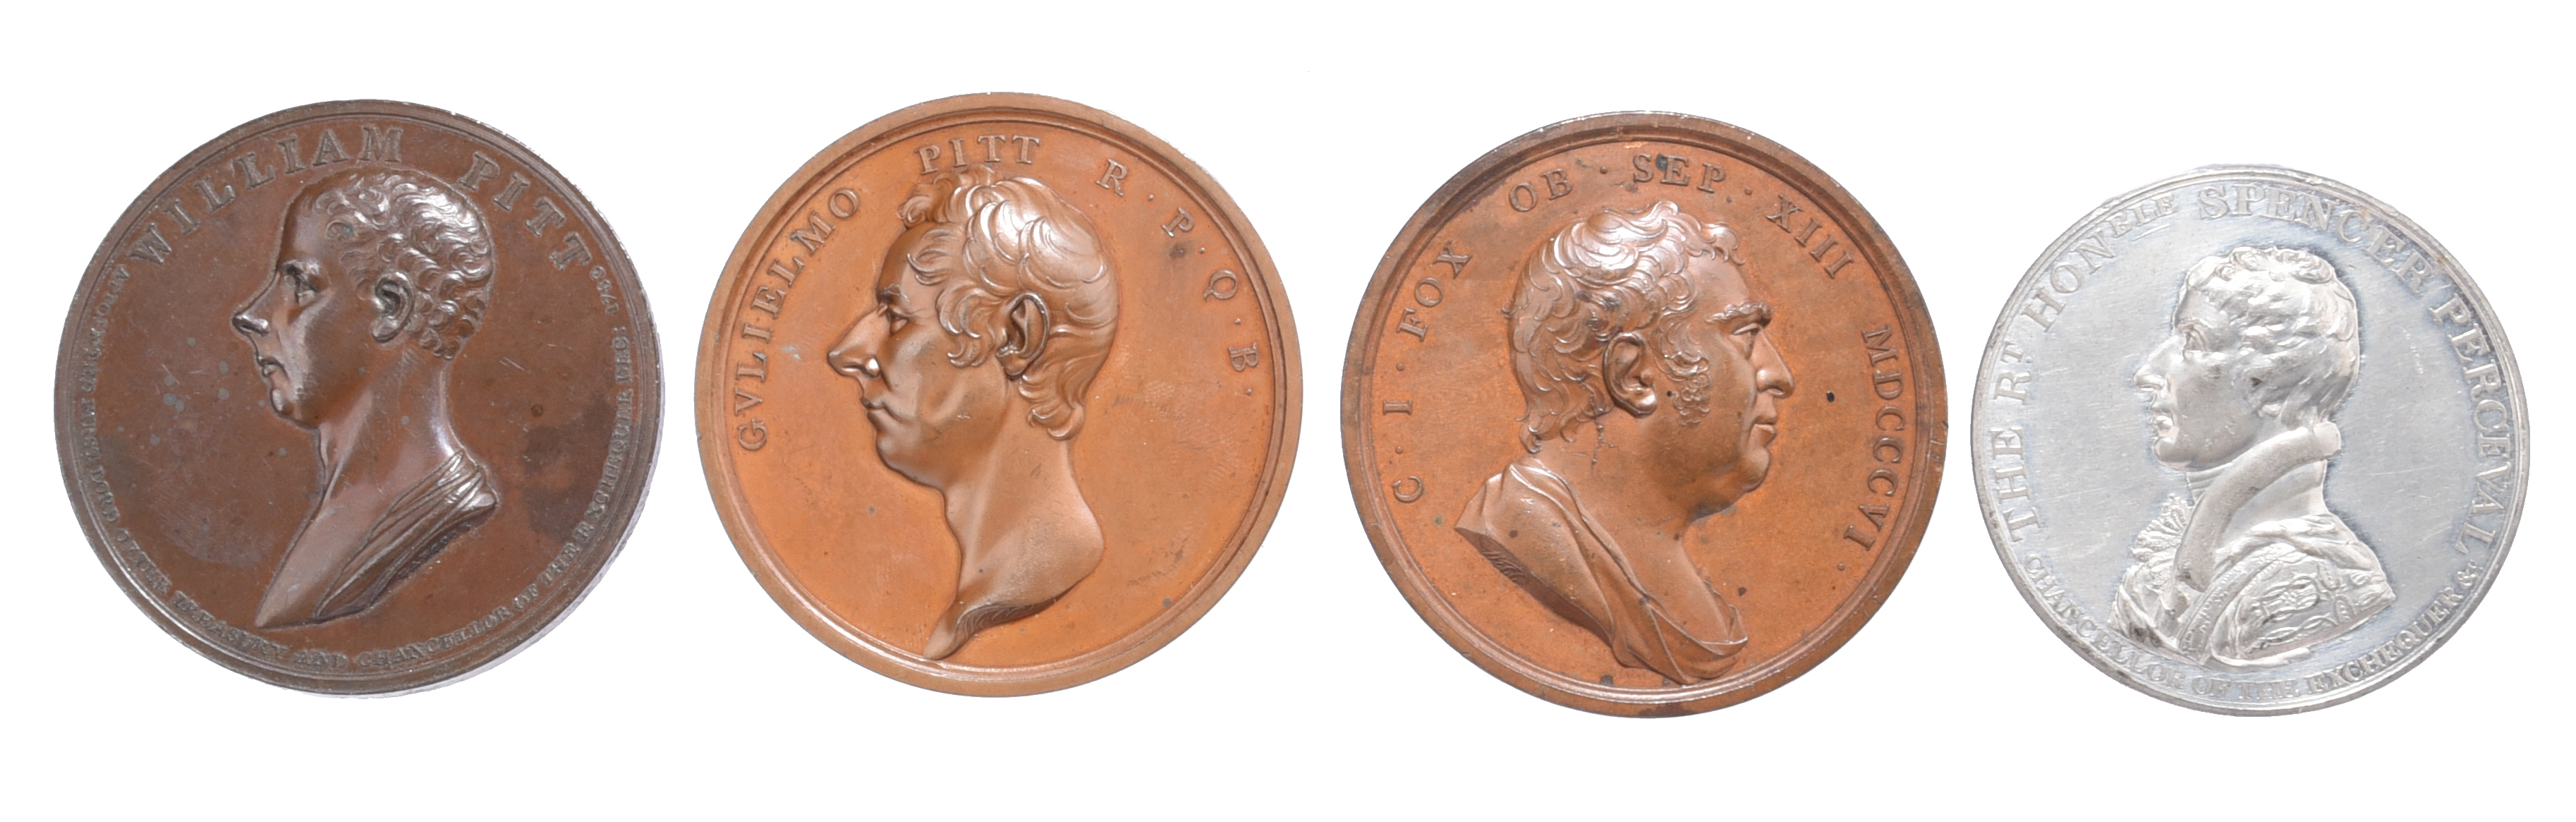 British politicians, four medals: William Pitt First Lord of the Treasury 1799, AE, 53mm, bust left,